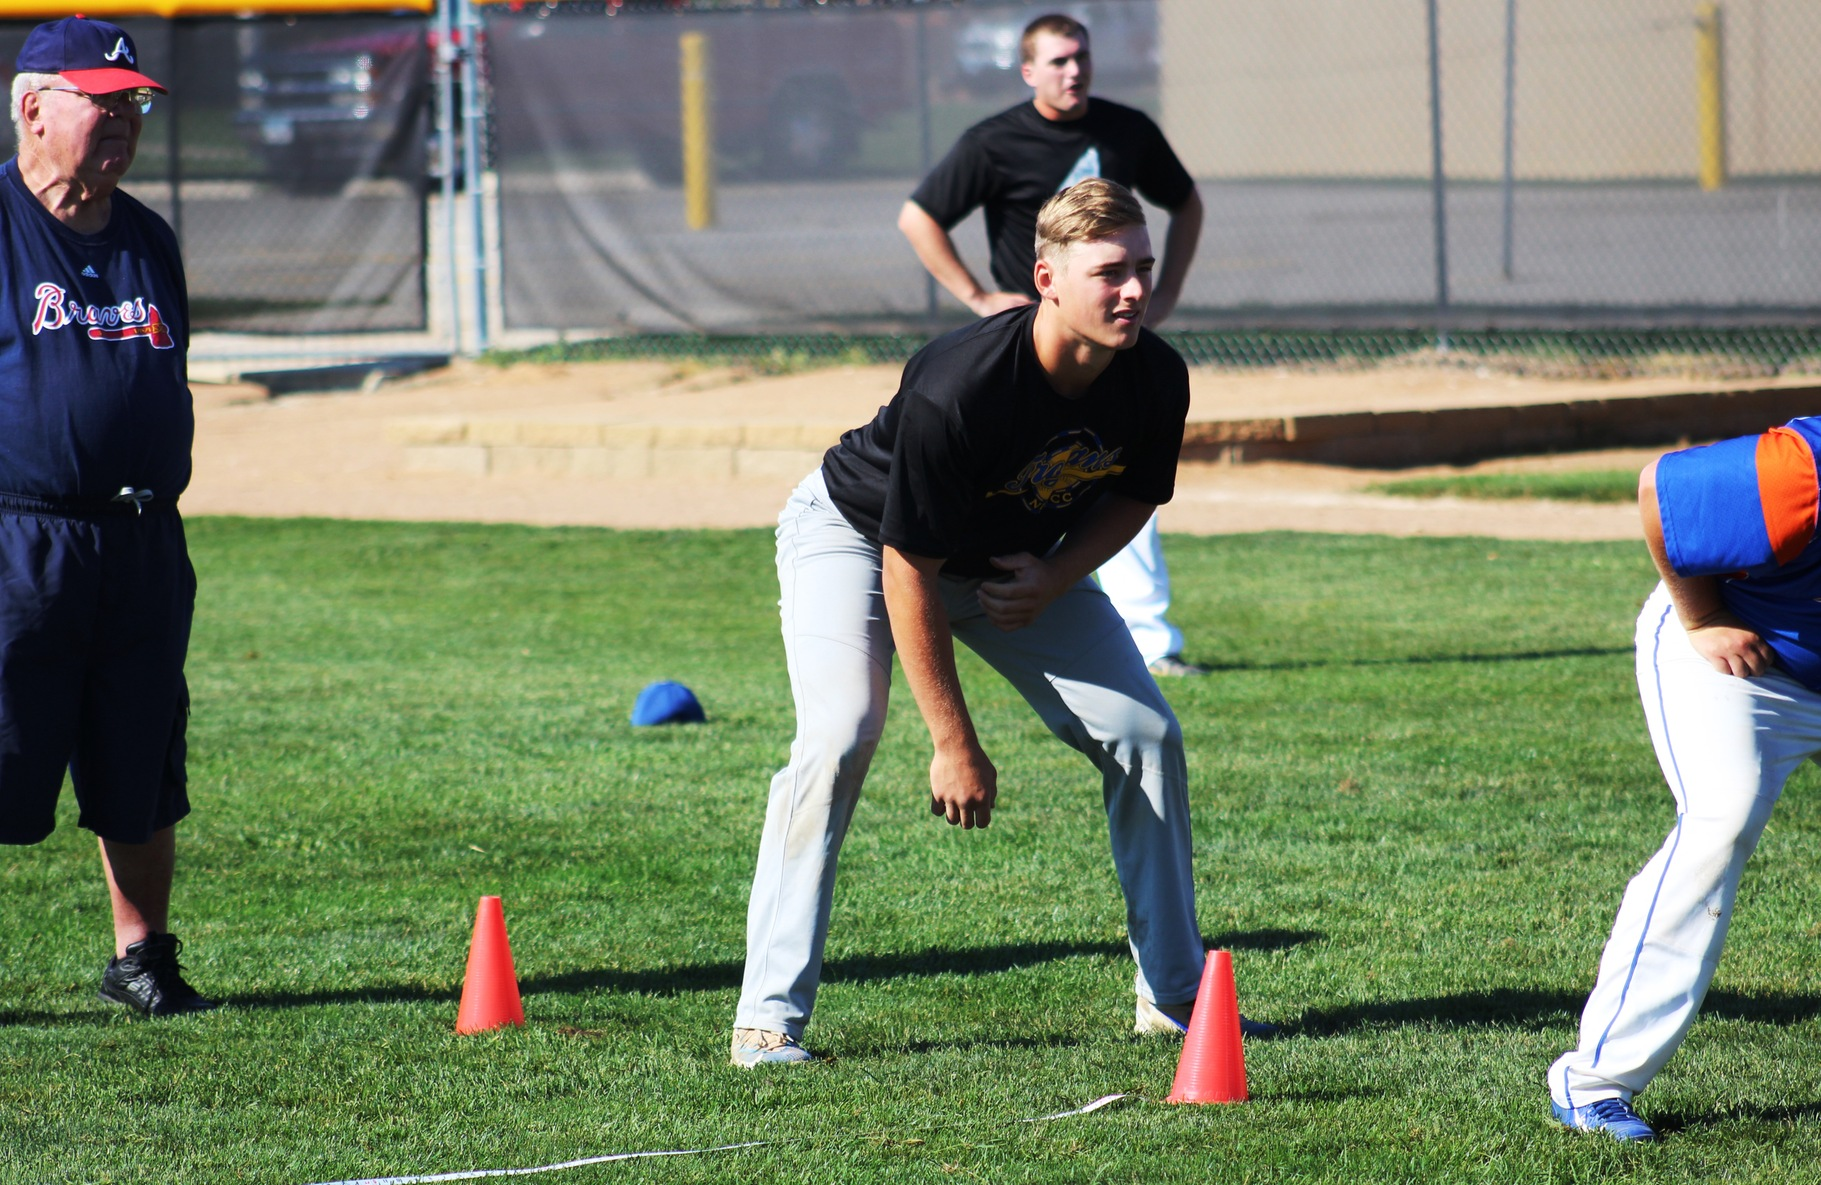 NIACC's Cade Schares gets ready to start the 60-yard dash at the Atlanta Braves tryout day Tuesday at Roosevelt Field.